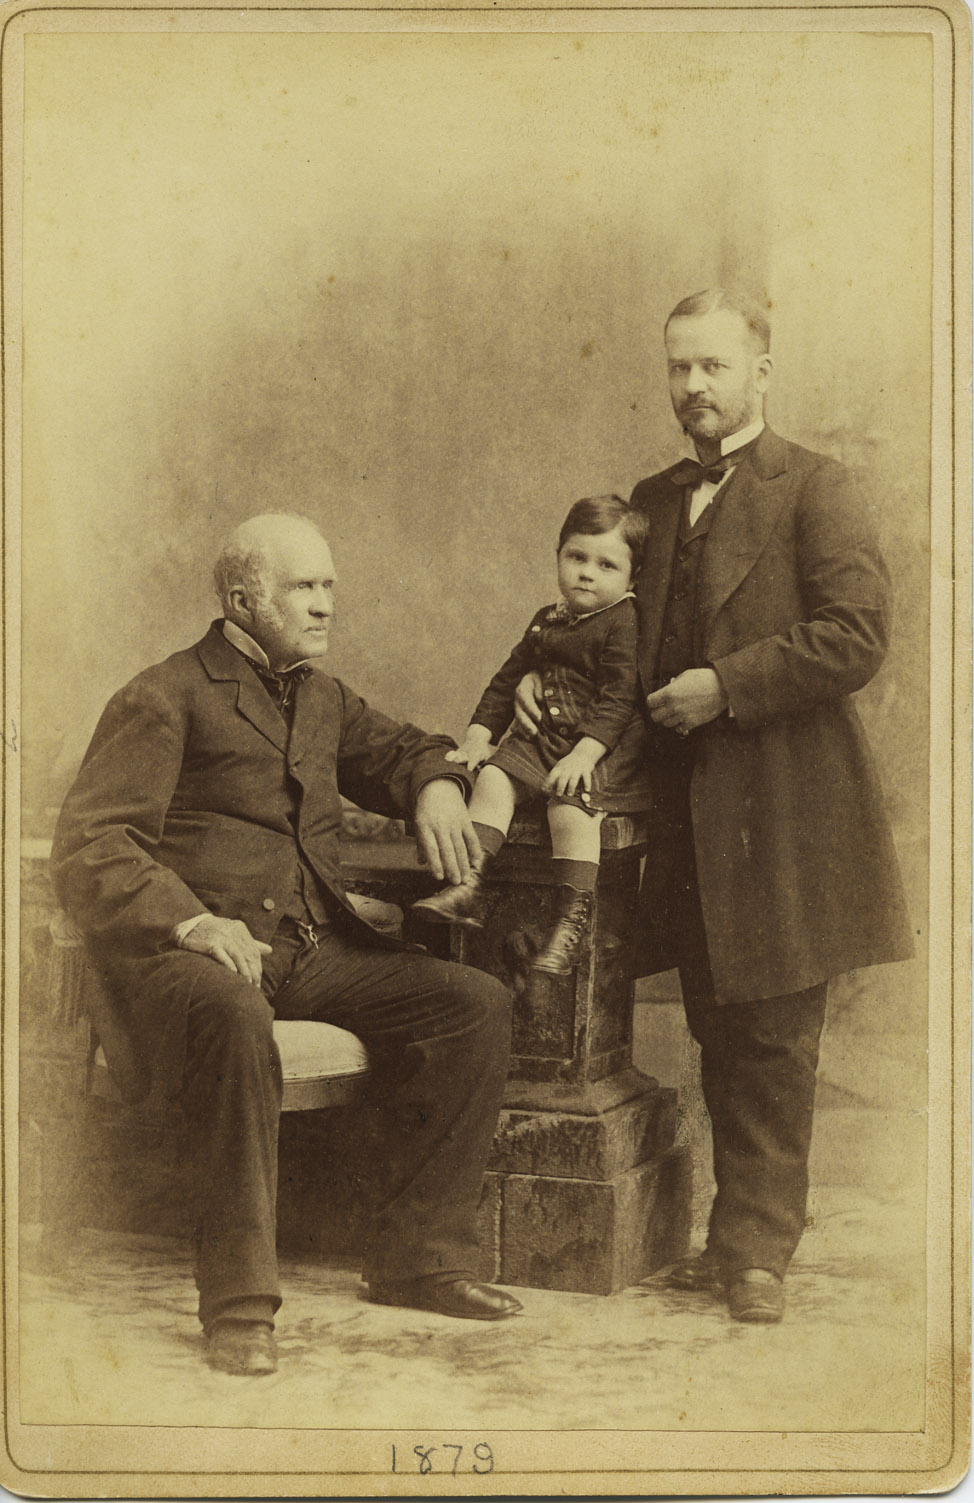 Three generations: including Erasmus Darwin Hudson Sr. and Jr.